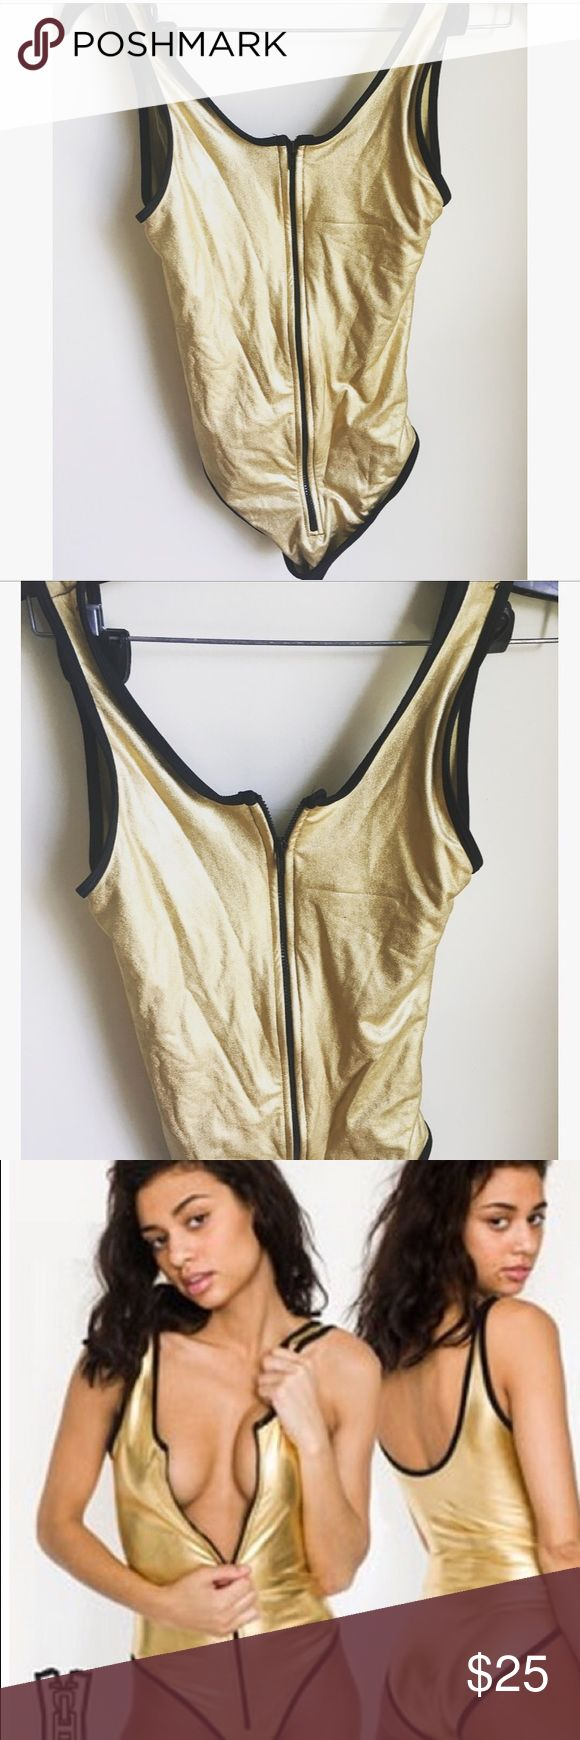 American Apparel zipper front gold bodysuit Gold and black zip-up bodysuit that also doubles as a swimsuit (the material is perfect for it!) Like-new, only worn once American Apparel Dresses